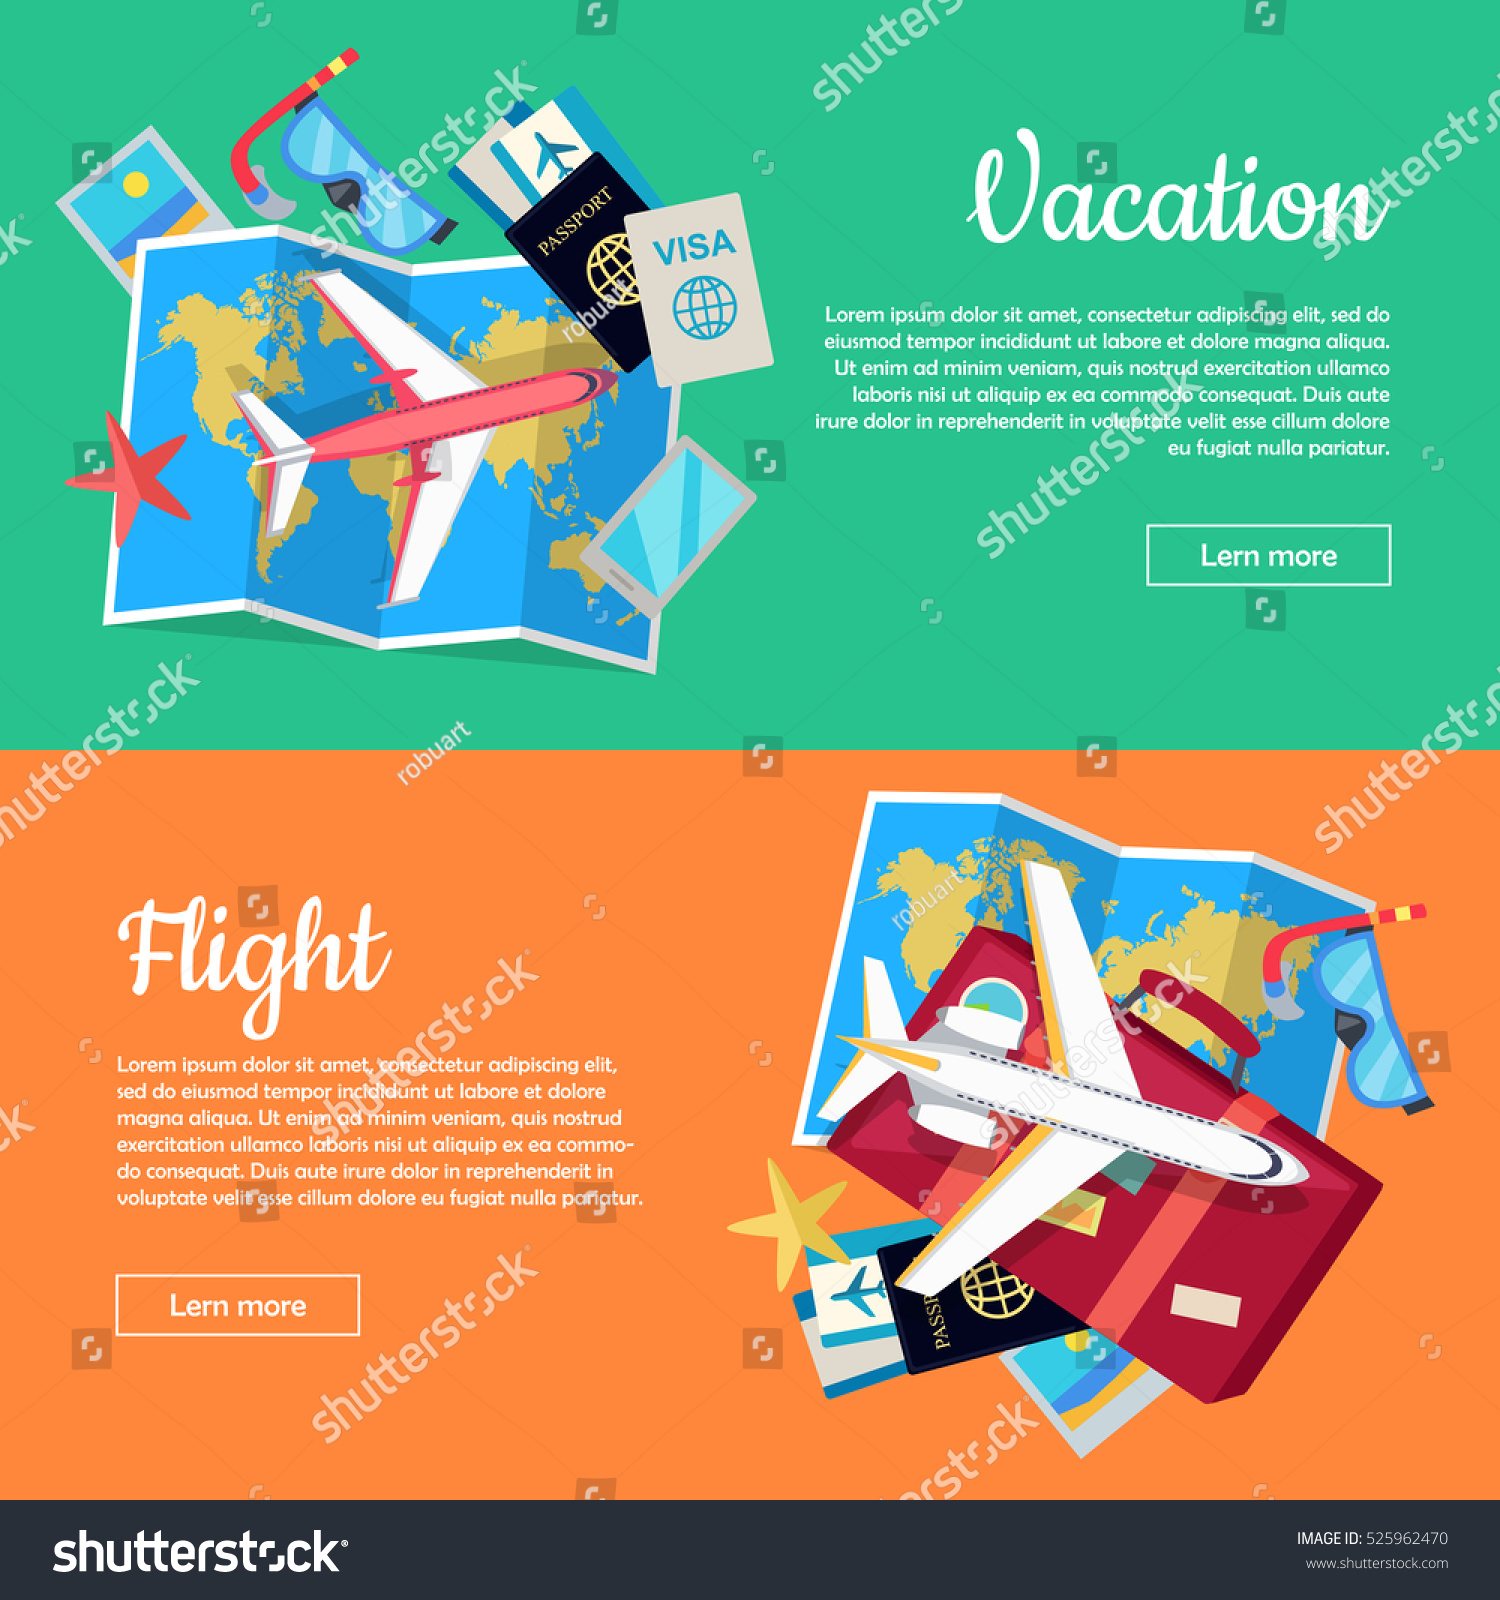 Vacation flight web banners aircraft luggage vectores en stock aircraft luggage world map air tickets gumiabroncs Gallery